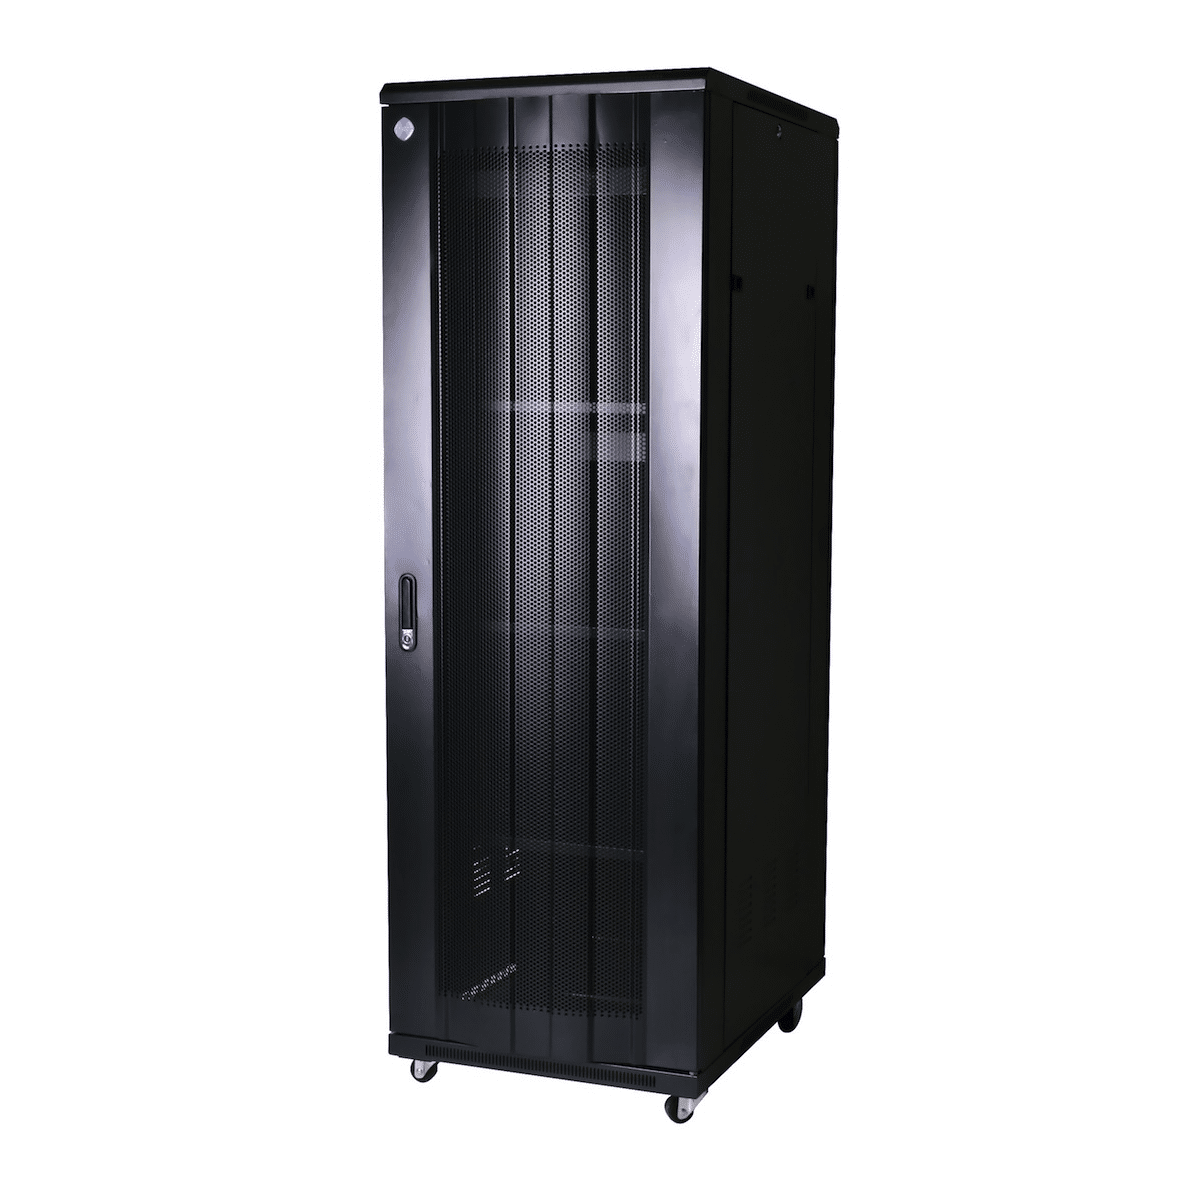 Curved 42RU 1000mm Deep X 600mm Wide Rack Cabinet